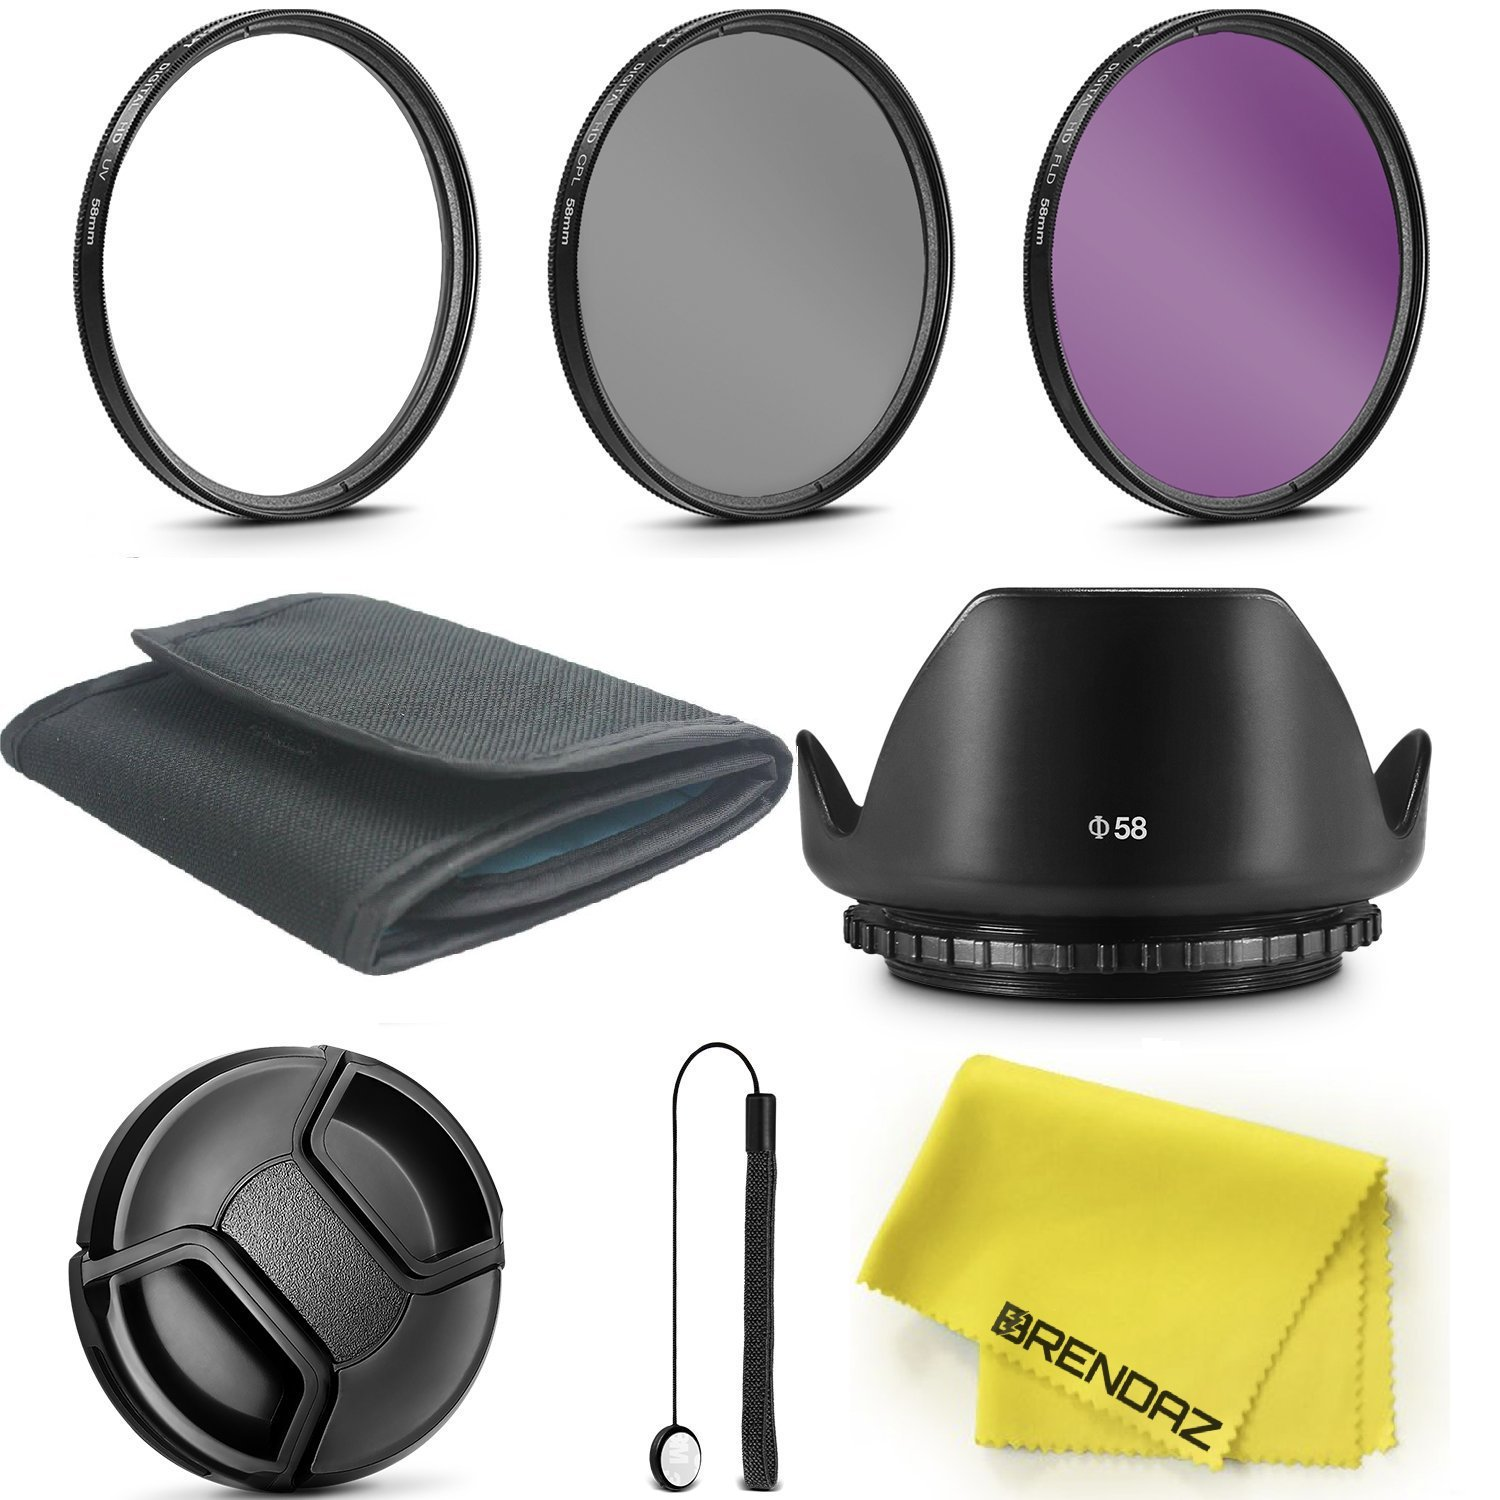 BRENDAZ 52mm UV CPL FLD Lens Filter & Lens Hood Kit w Lens Cap, Cap Keeper, Pouch Cloth for NIKON D3300 D3200 D3100 D7000 D7100 DSLR Camera and all other Lenses with 52mm thread by BRENDAZ